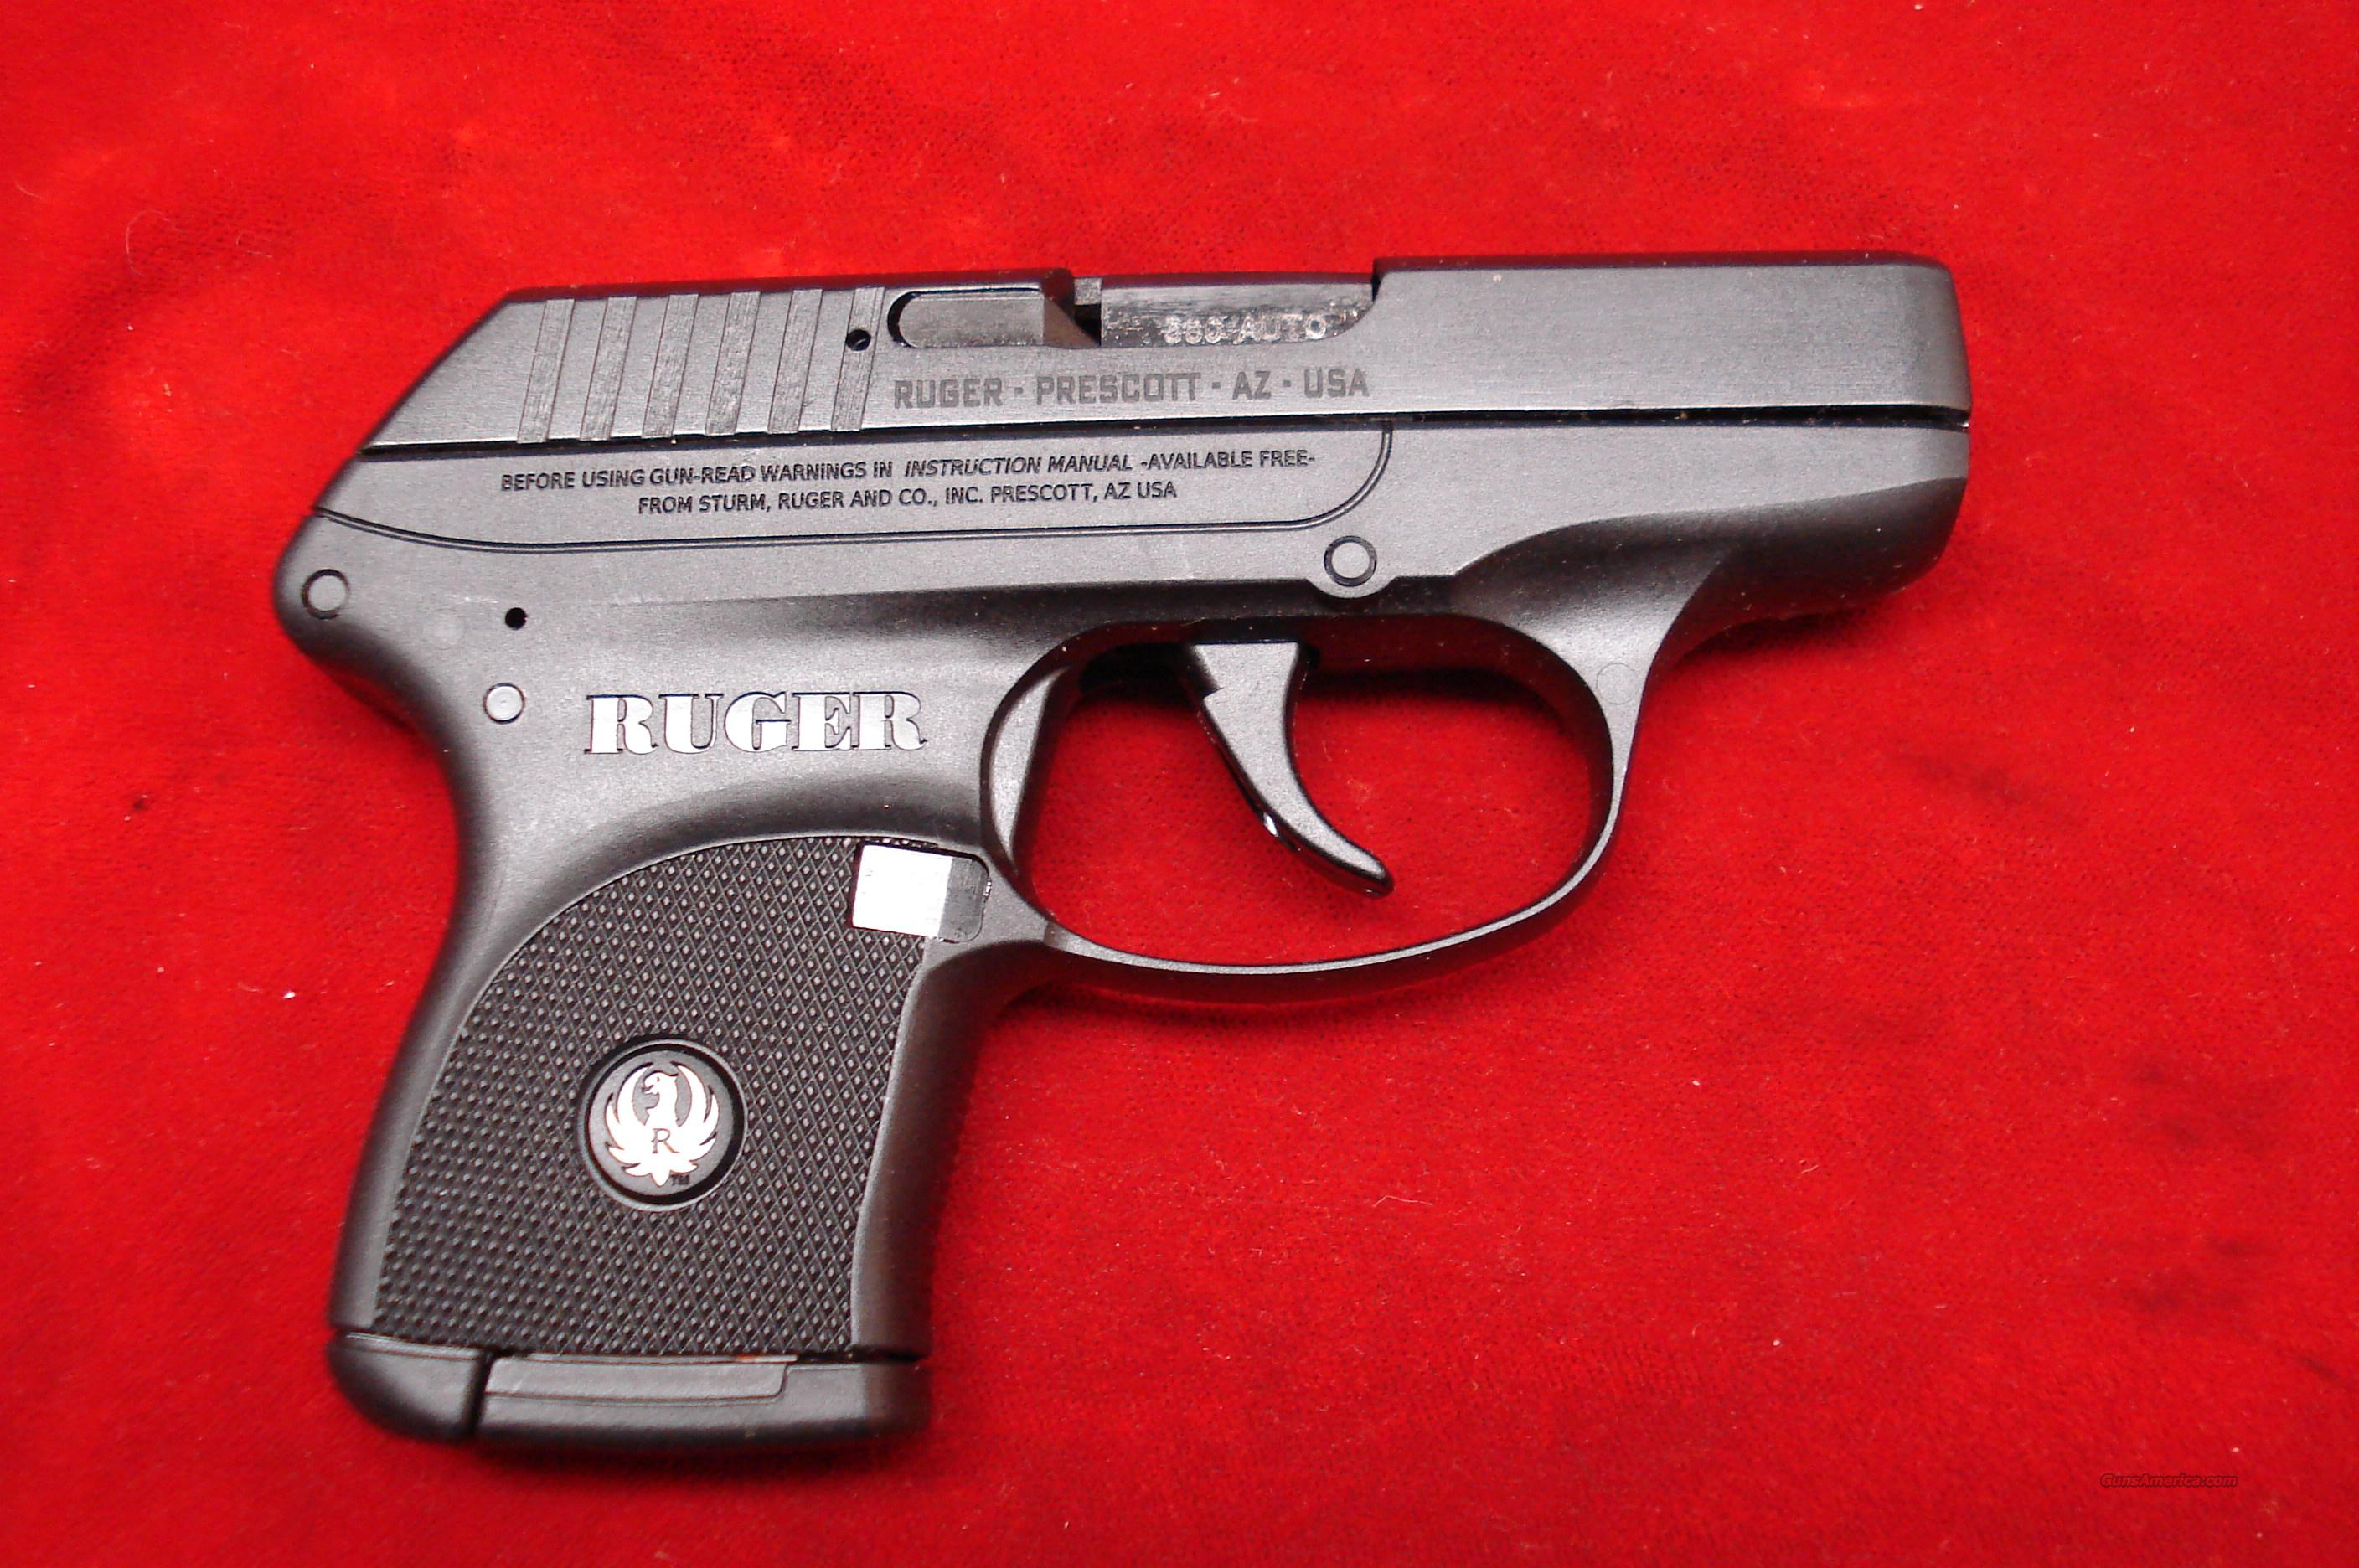 RUGER LCP  (Lightweight Compact Pistol) 380CAL. NEW  (03701)  Guns > Pistols > Ruger Semi-Auto Pistols > LCP